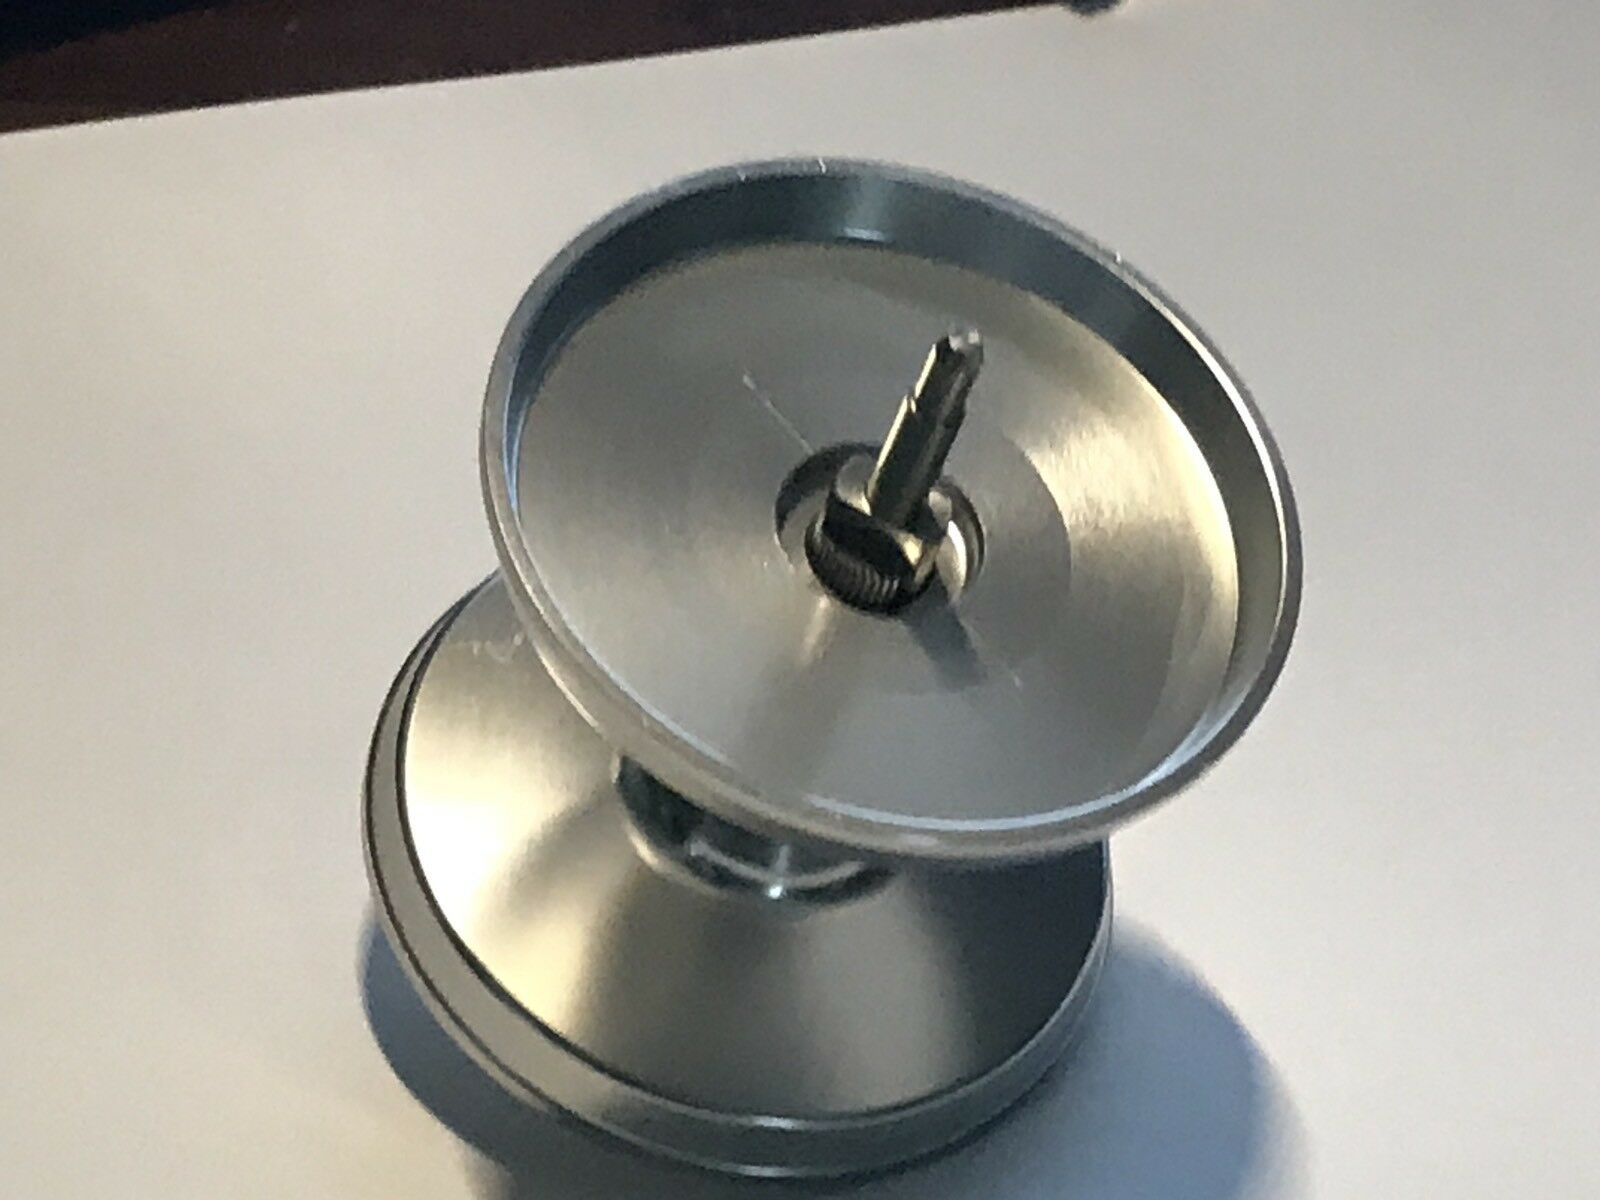 New Aluminum Spool for PENN 27, 100M, 180, 185 BayMaster BayMaster BayMaster and 190 (up to 1990) b74f3f